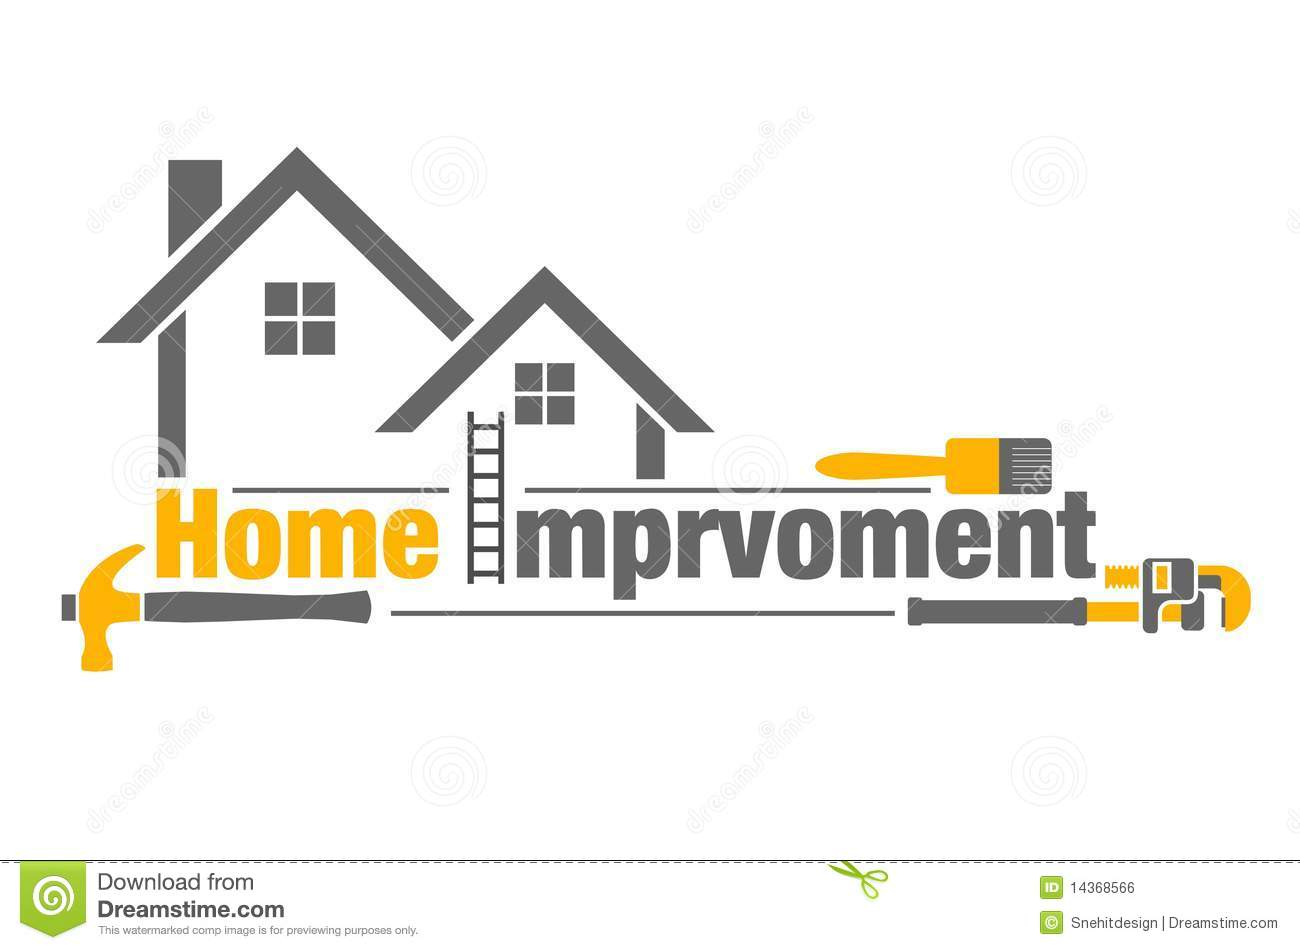 Home improvement icon. Home Improvement Icon Royalty Free Stock Image   Image  14368566